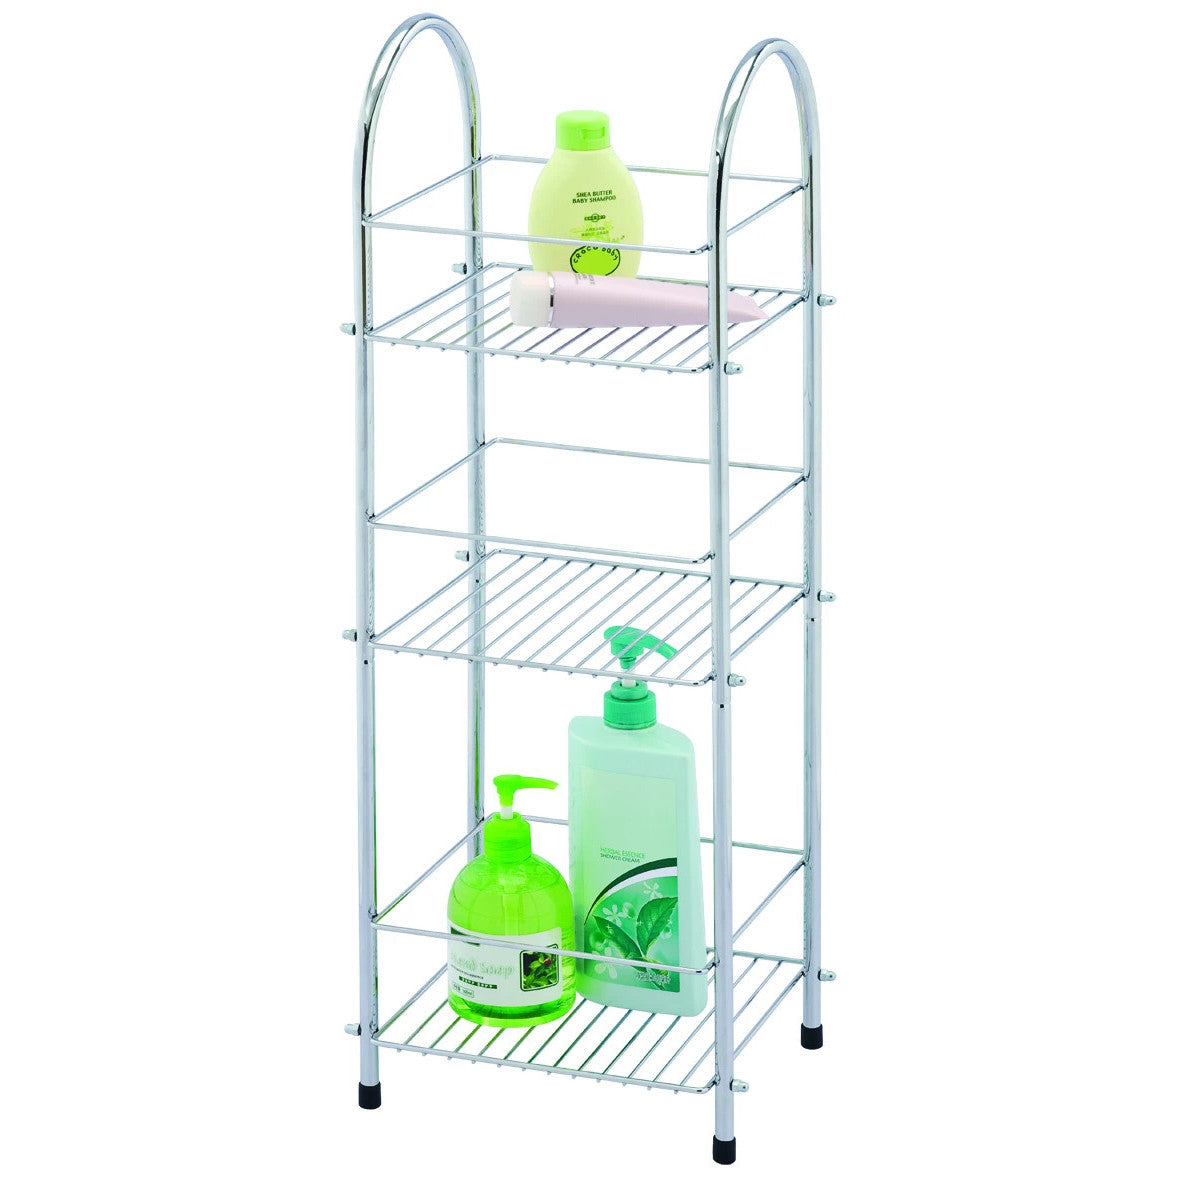 Sabichi 3 Tier Chrome Plated Storage Unit-99303